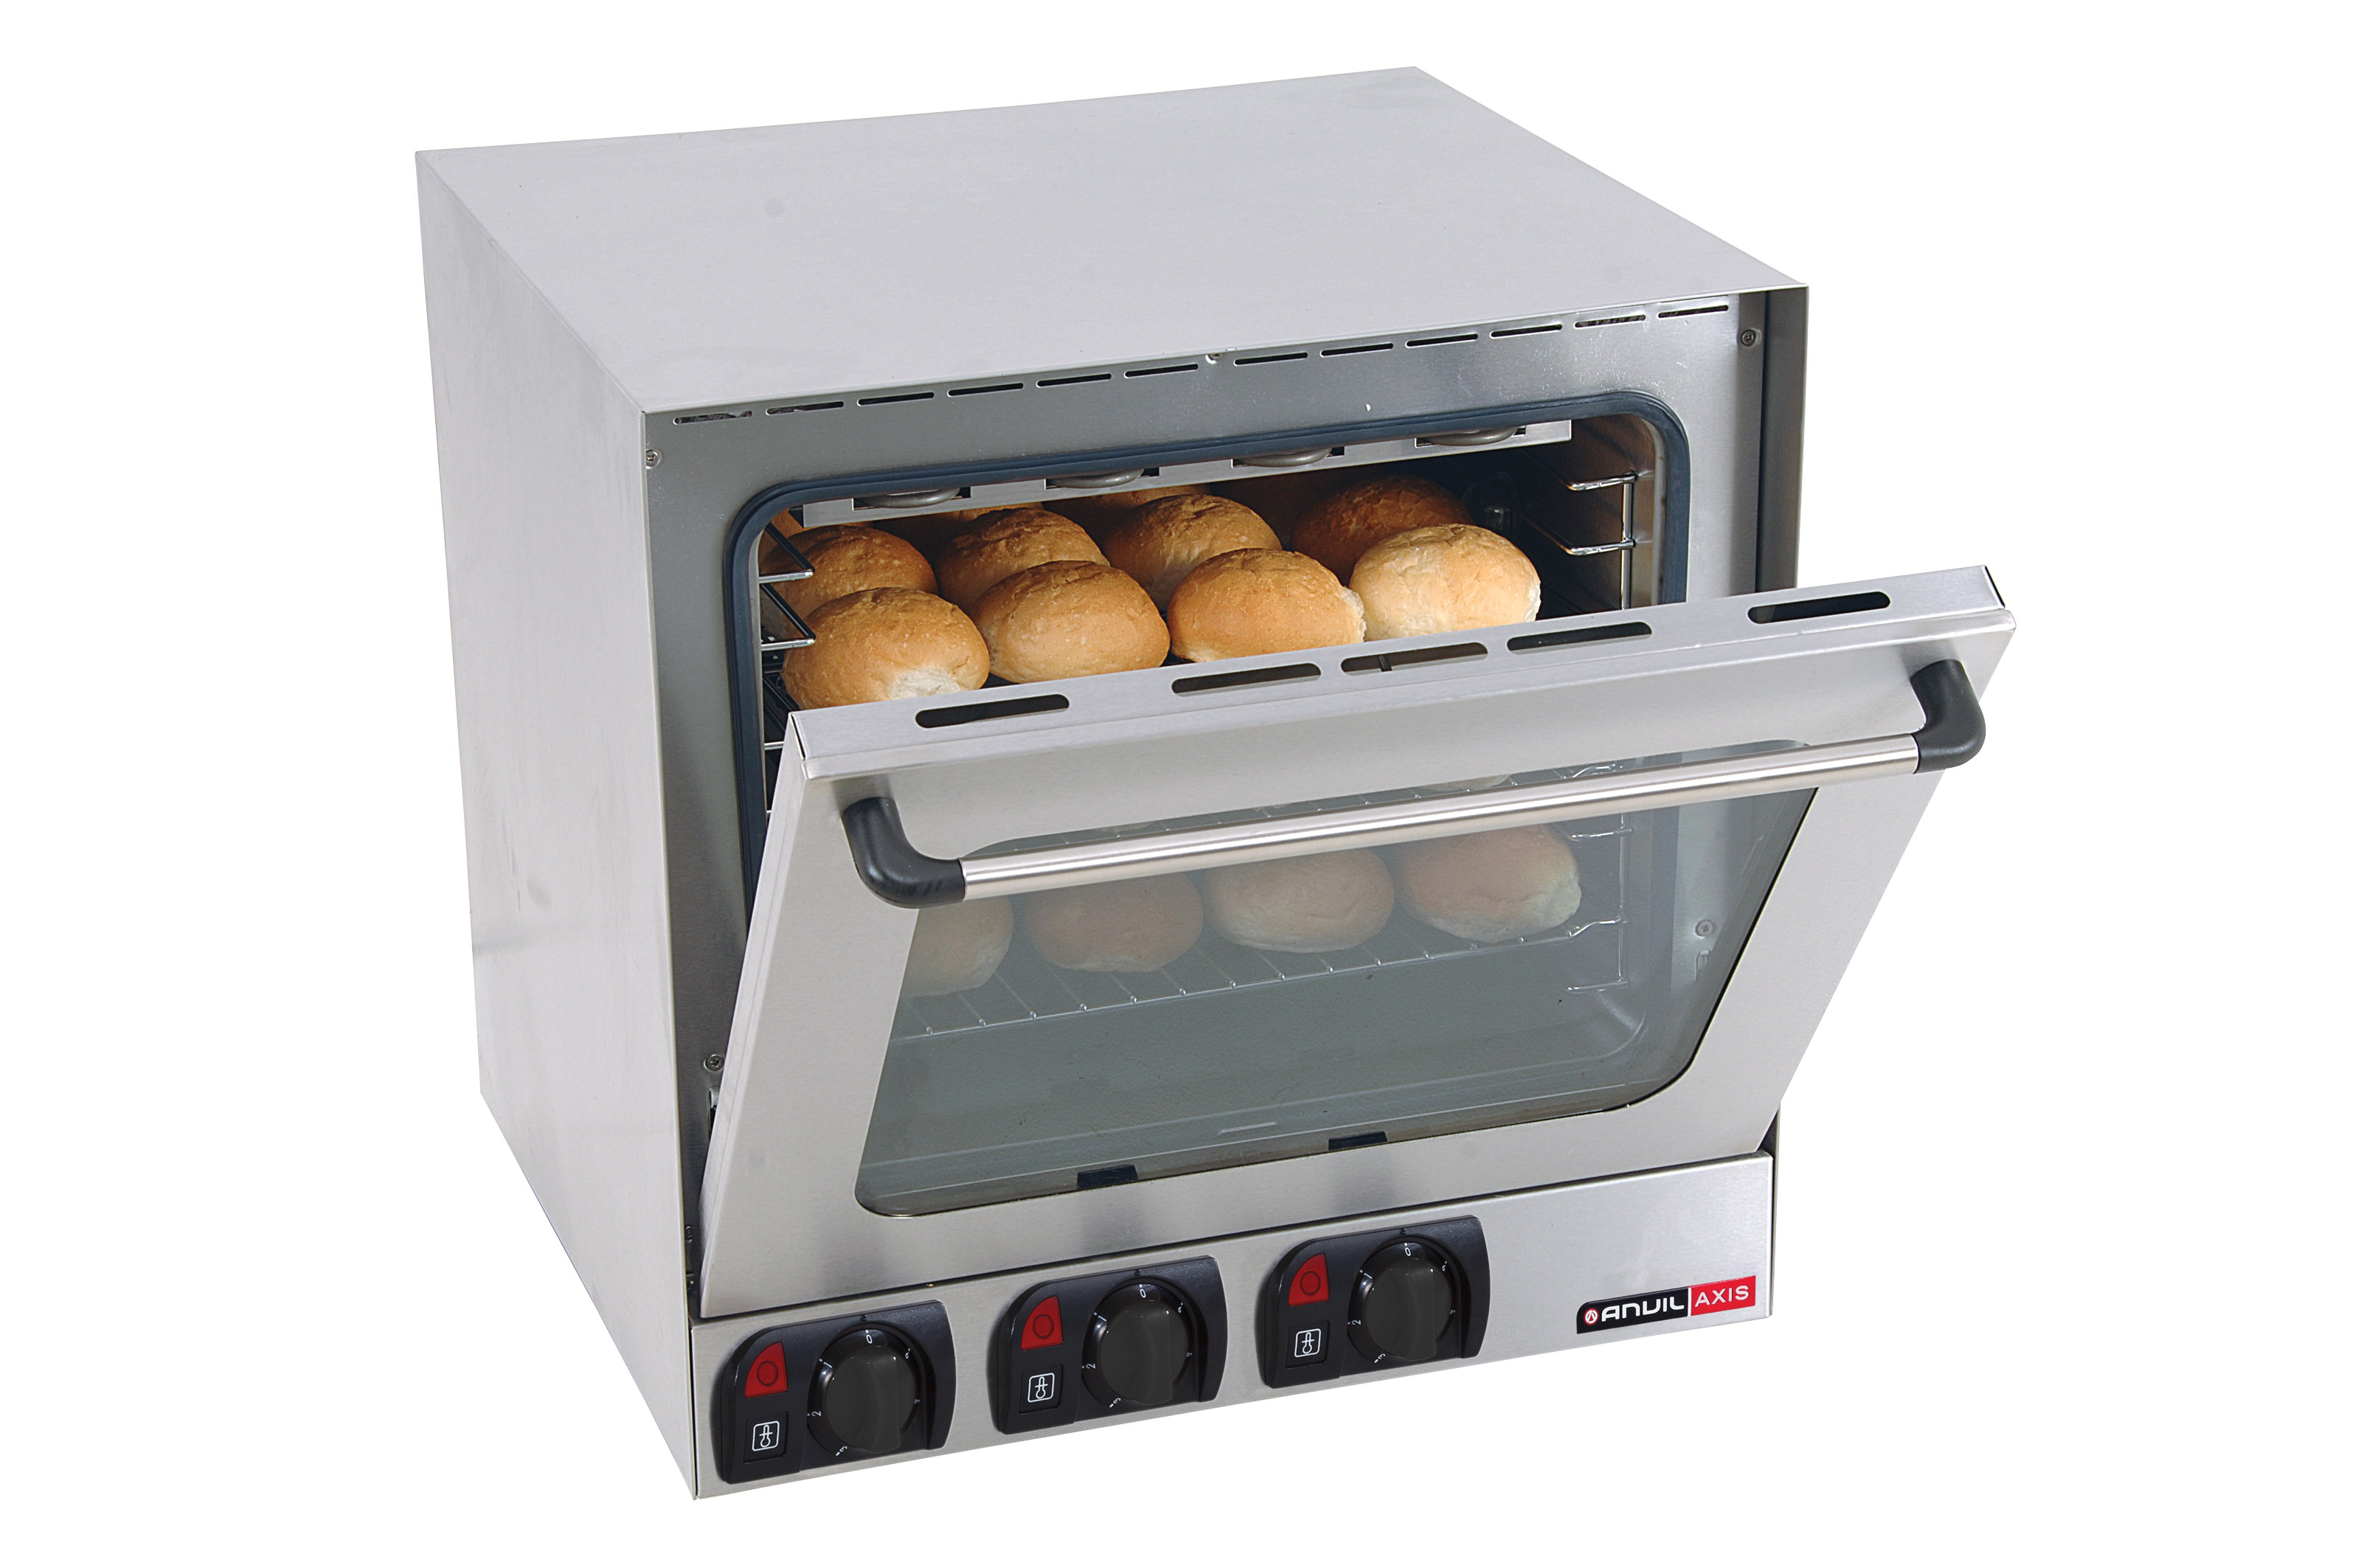 4 Pan Convection Oven – Anvil Prima